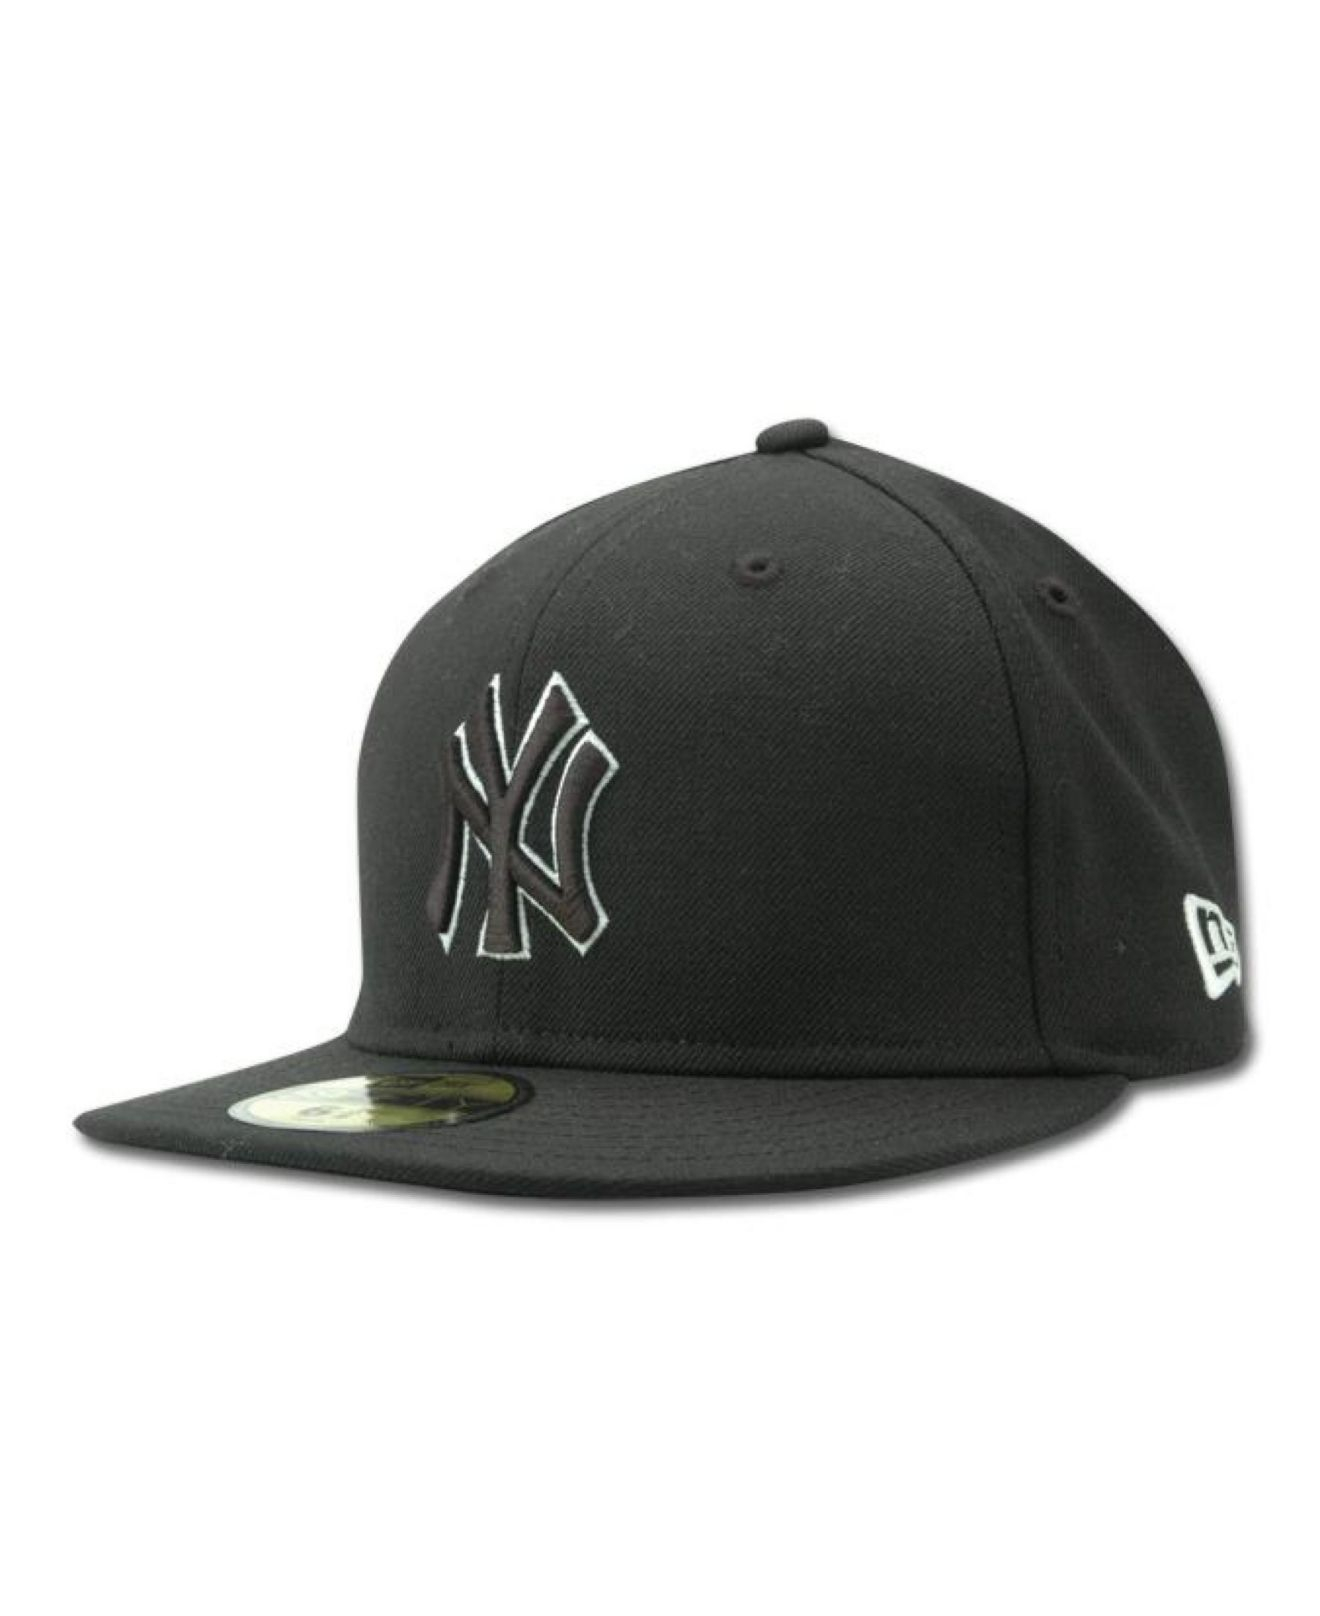 black single men in new era Create custom flexfit caps with your logo or design design custom embroidered fitted hats from yupoong, under armour, new era & other top brands.